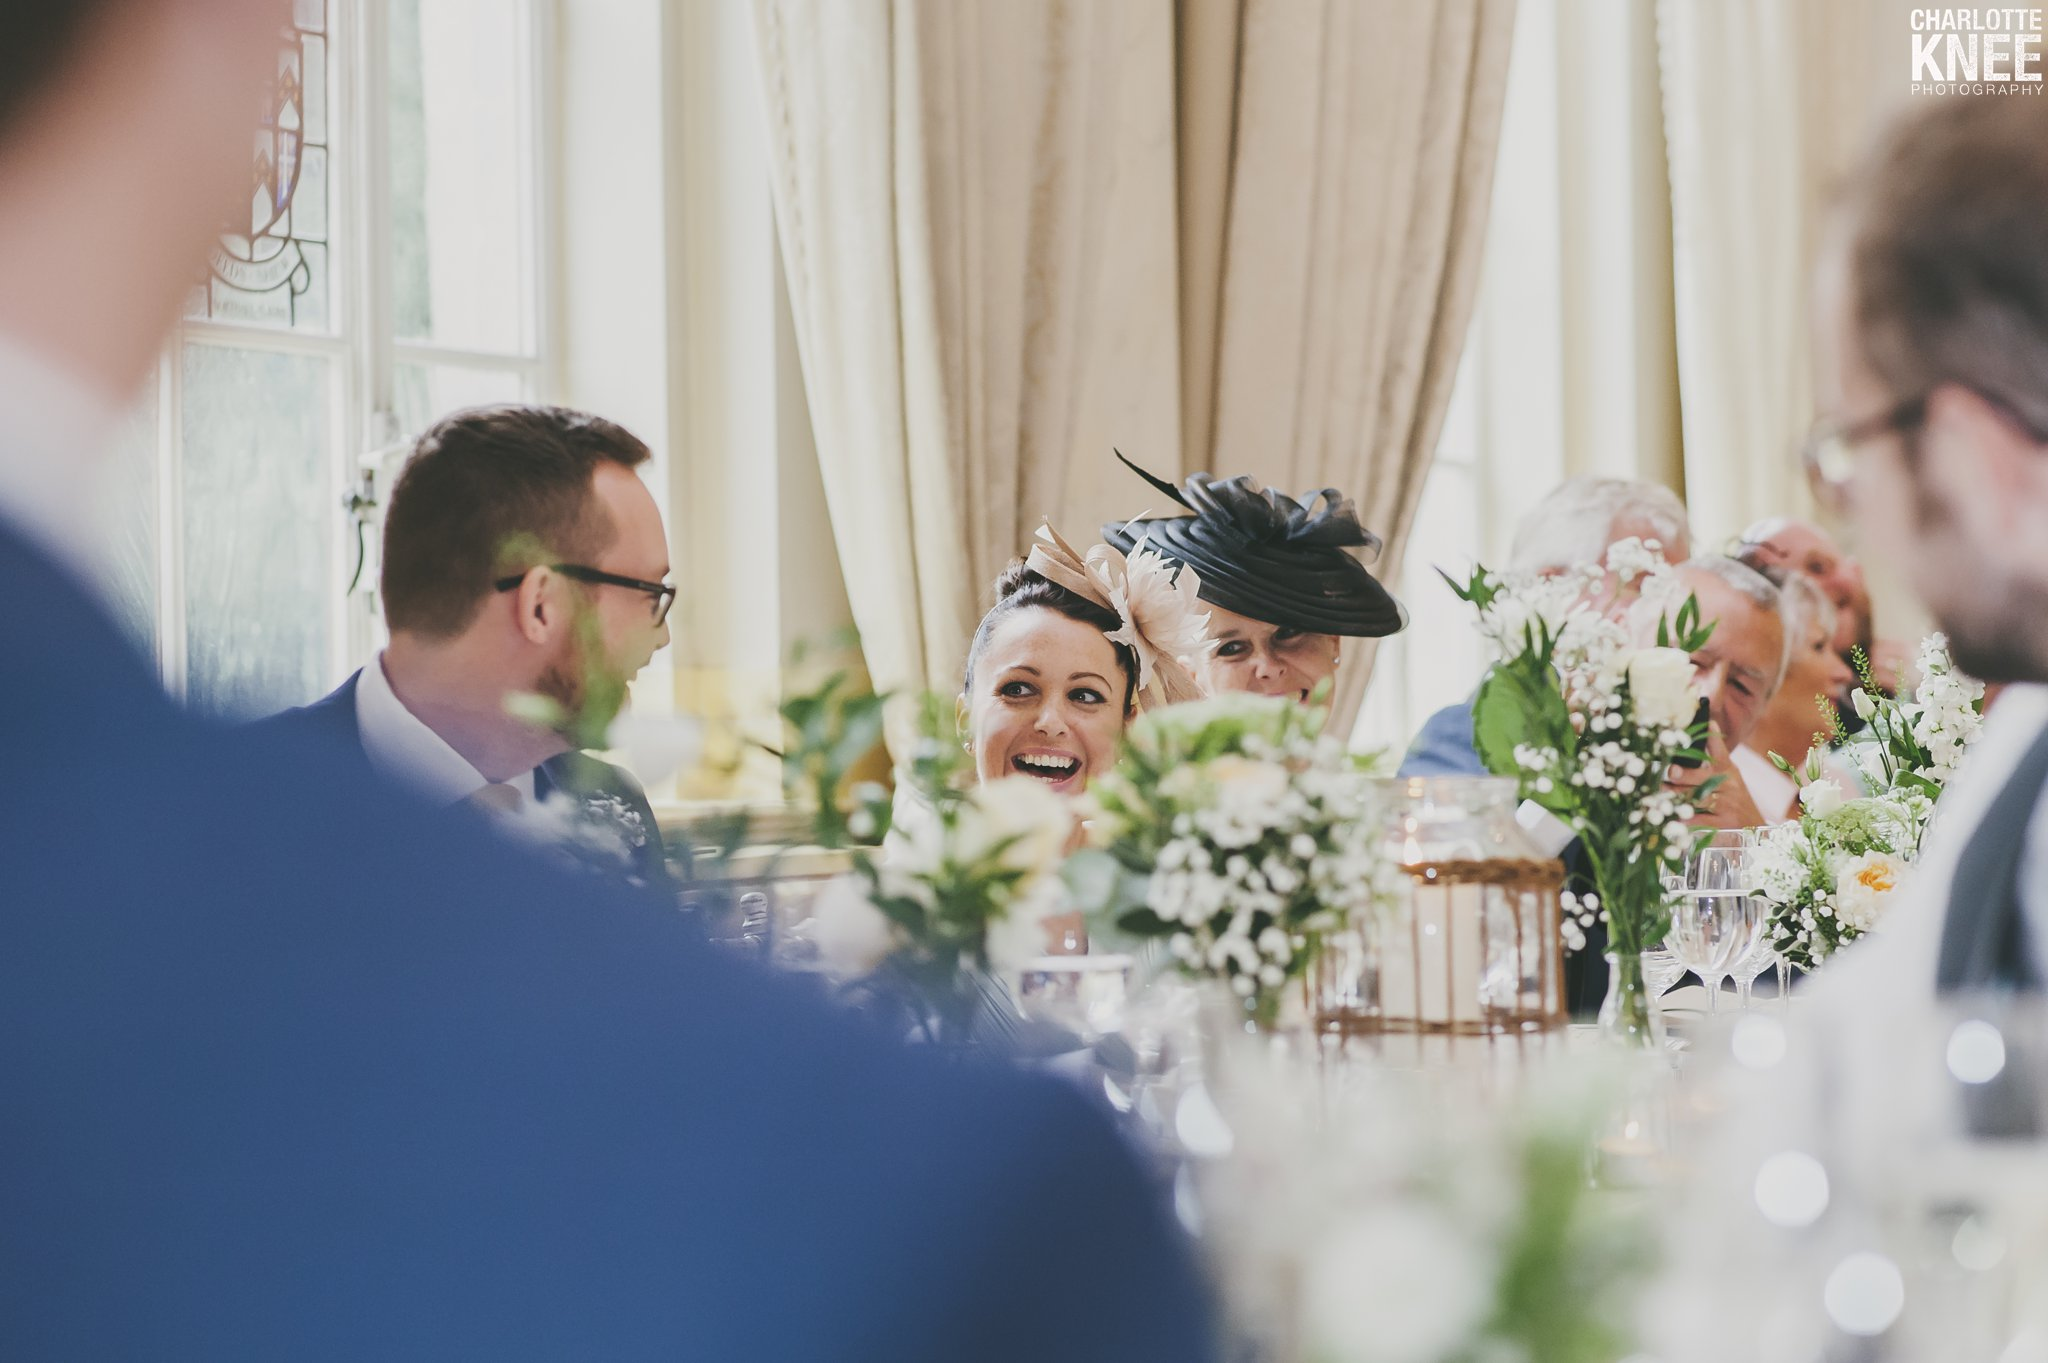 Saddlers Hall London Wedding Photography Copyright Charlotte Knee Photography_0160.jpg